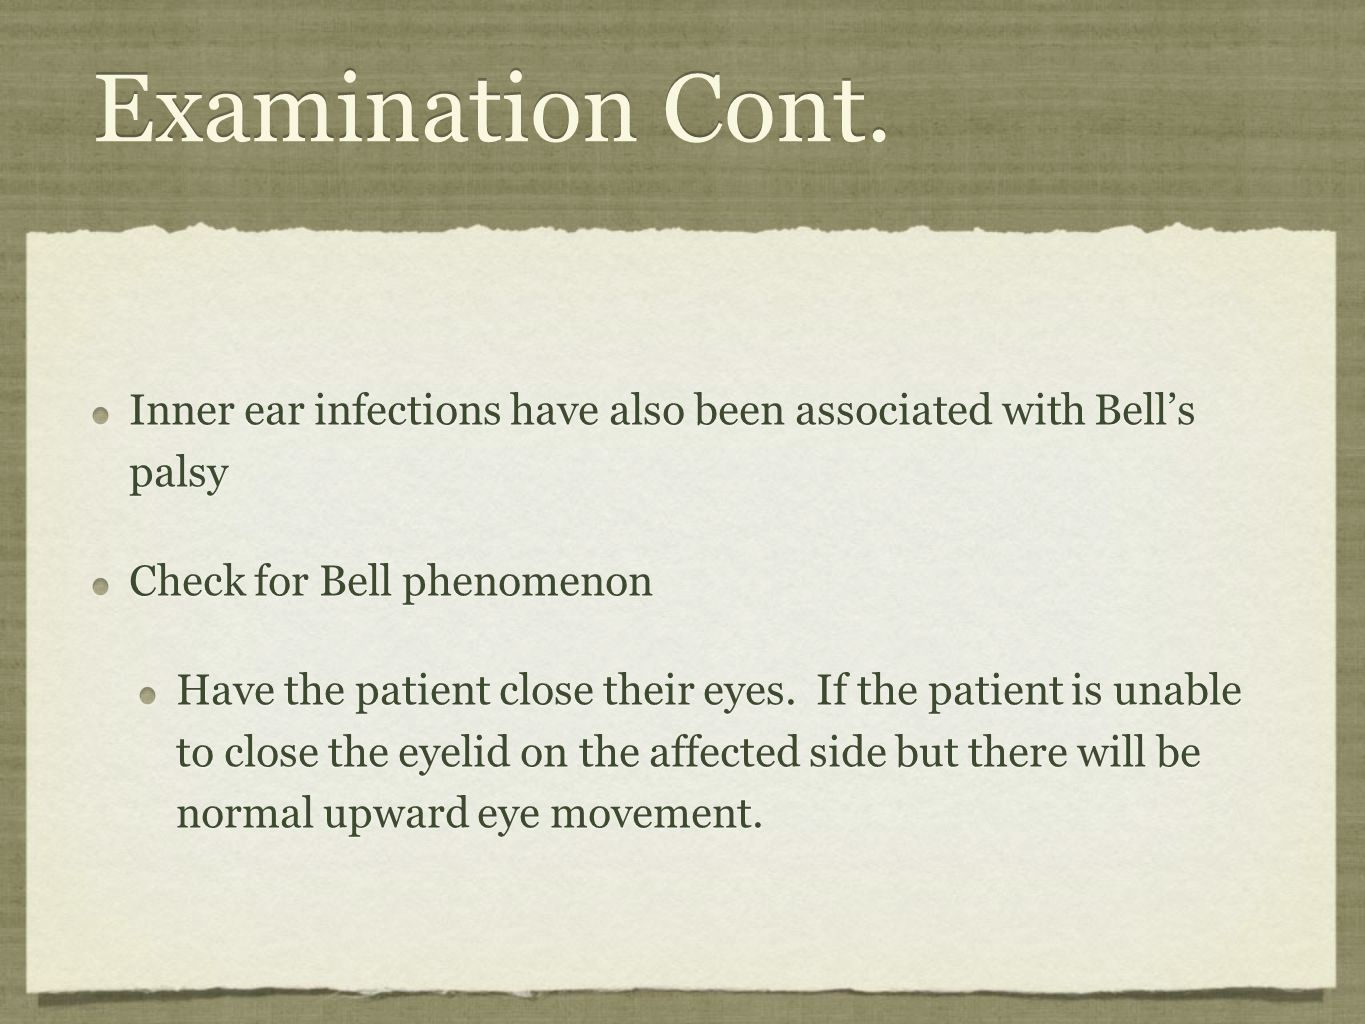 Examination Cont. Inner ear infections have also been associated with Bell's palsy. Check for Bell phenomenon.